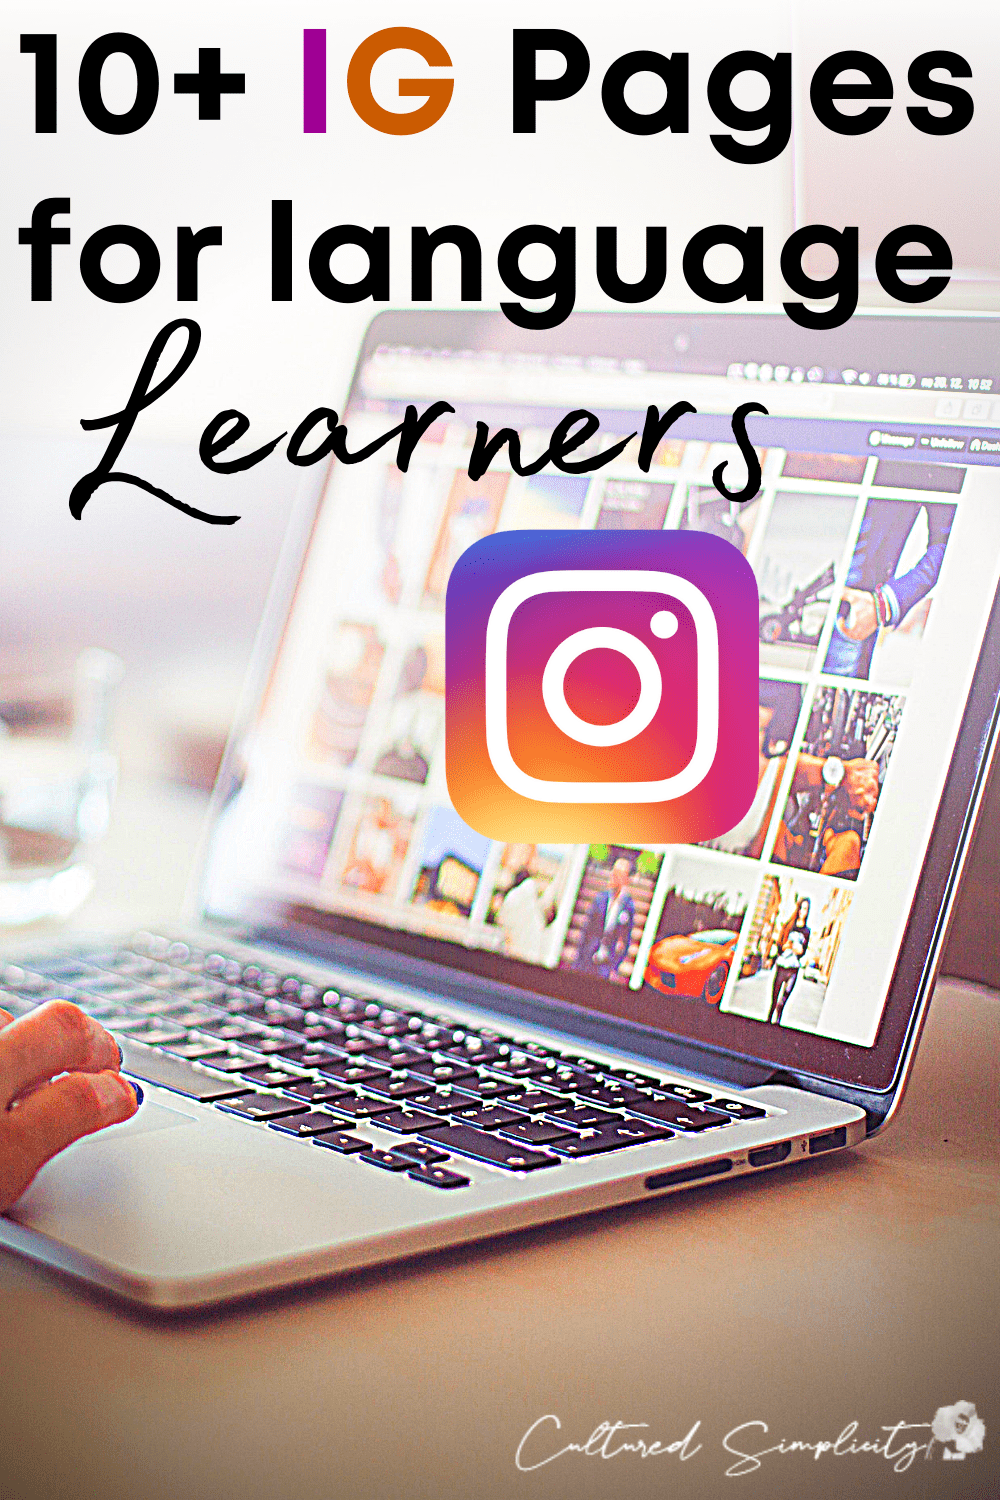 10+ Instagram Pages that actually get what language learning is all about